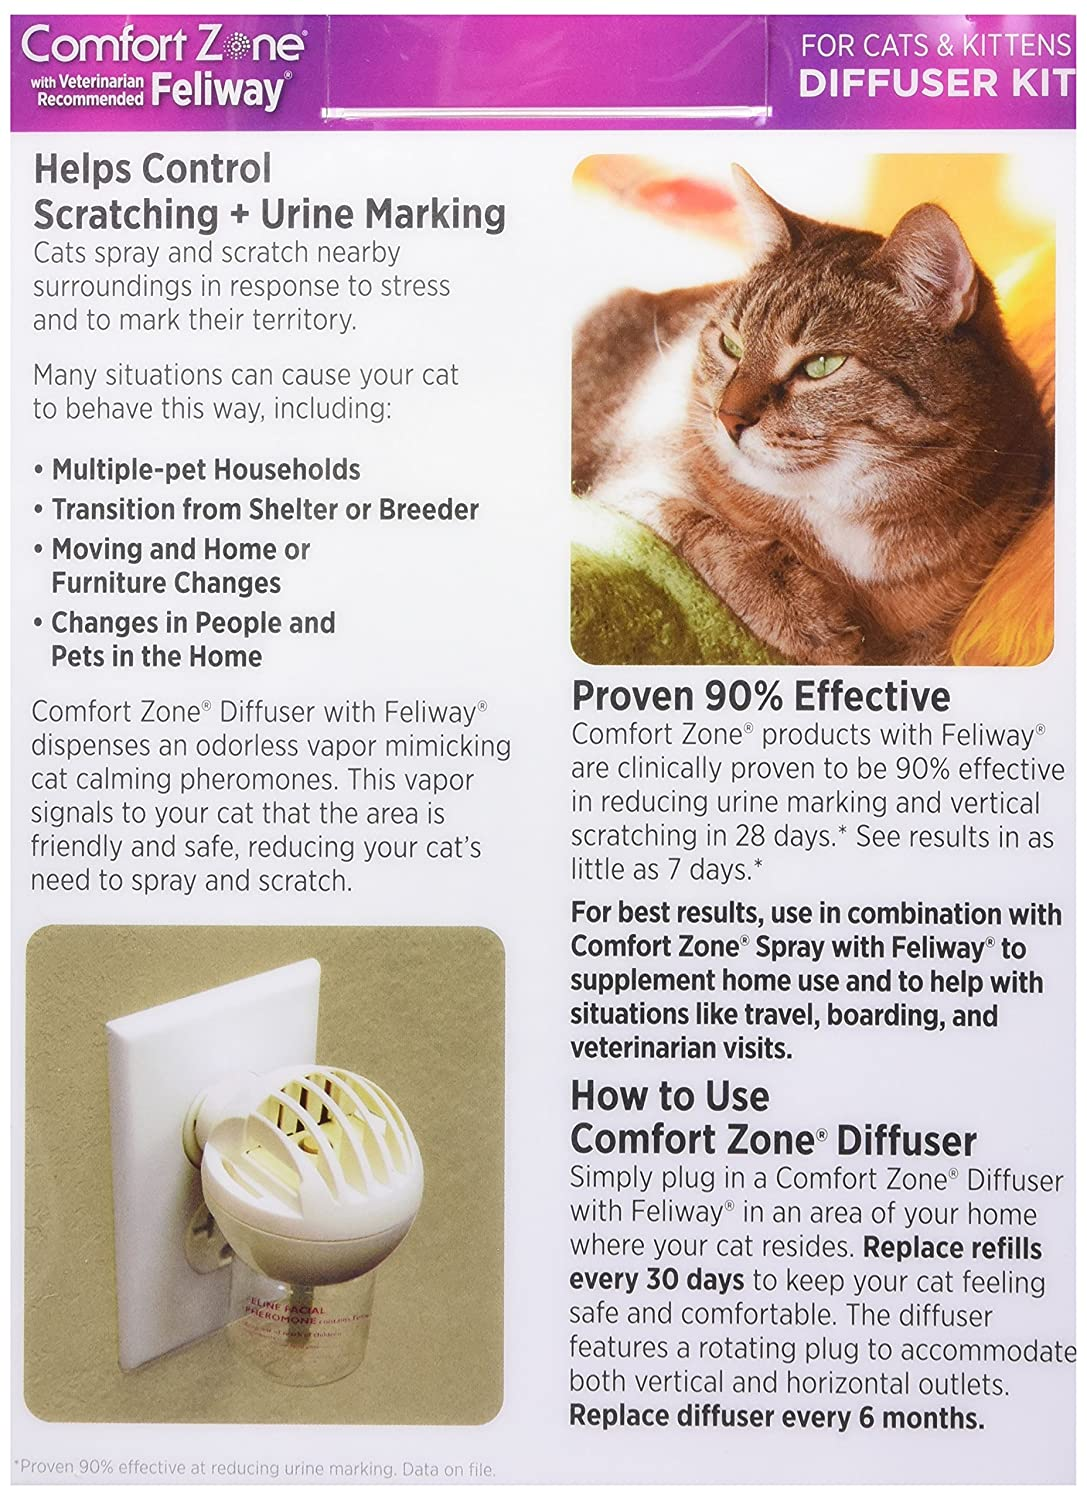 Amazoncom Comfort Zone Feliway Diffuser Kit For Cat Calming - 22 cats living better life right now